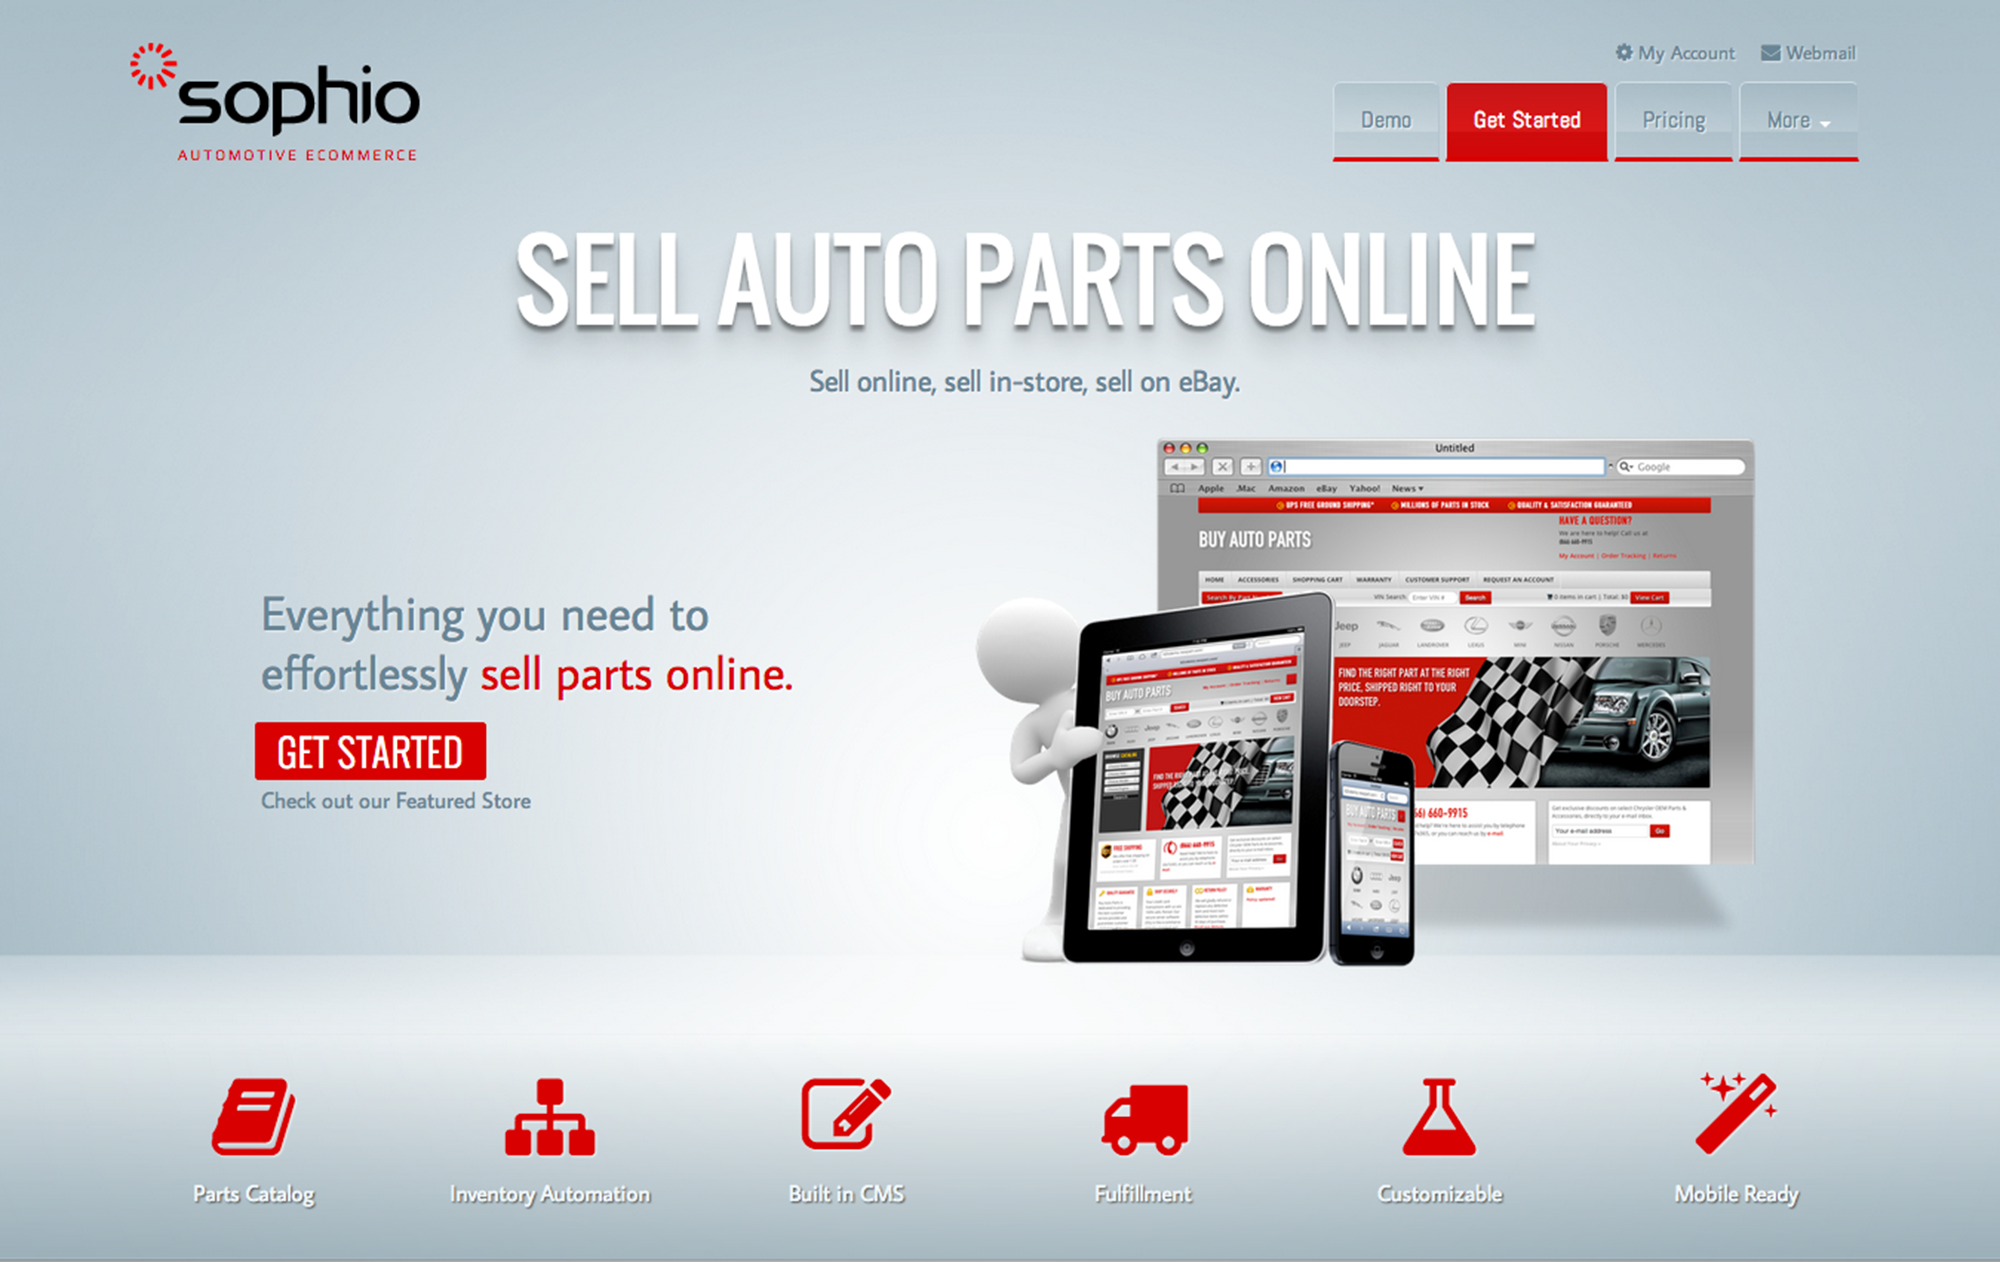 Sell Parts Online - FAQ - Sophio Automotive eCommerce